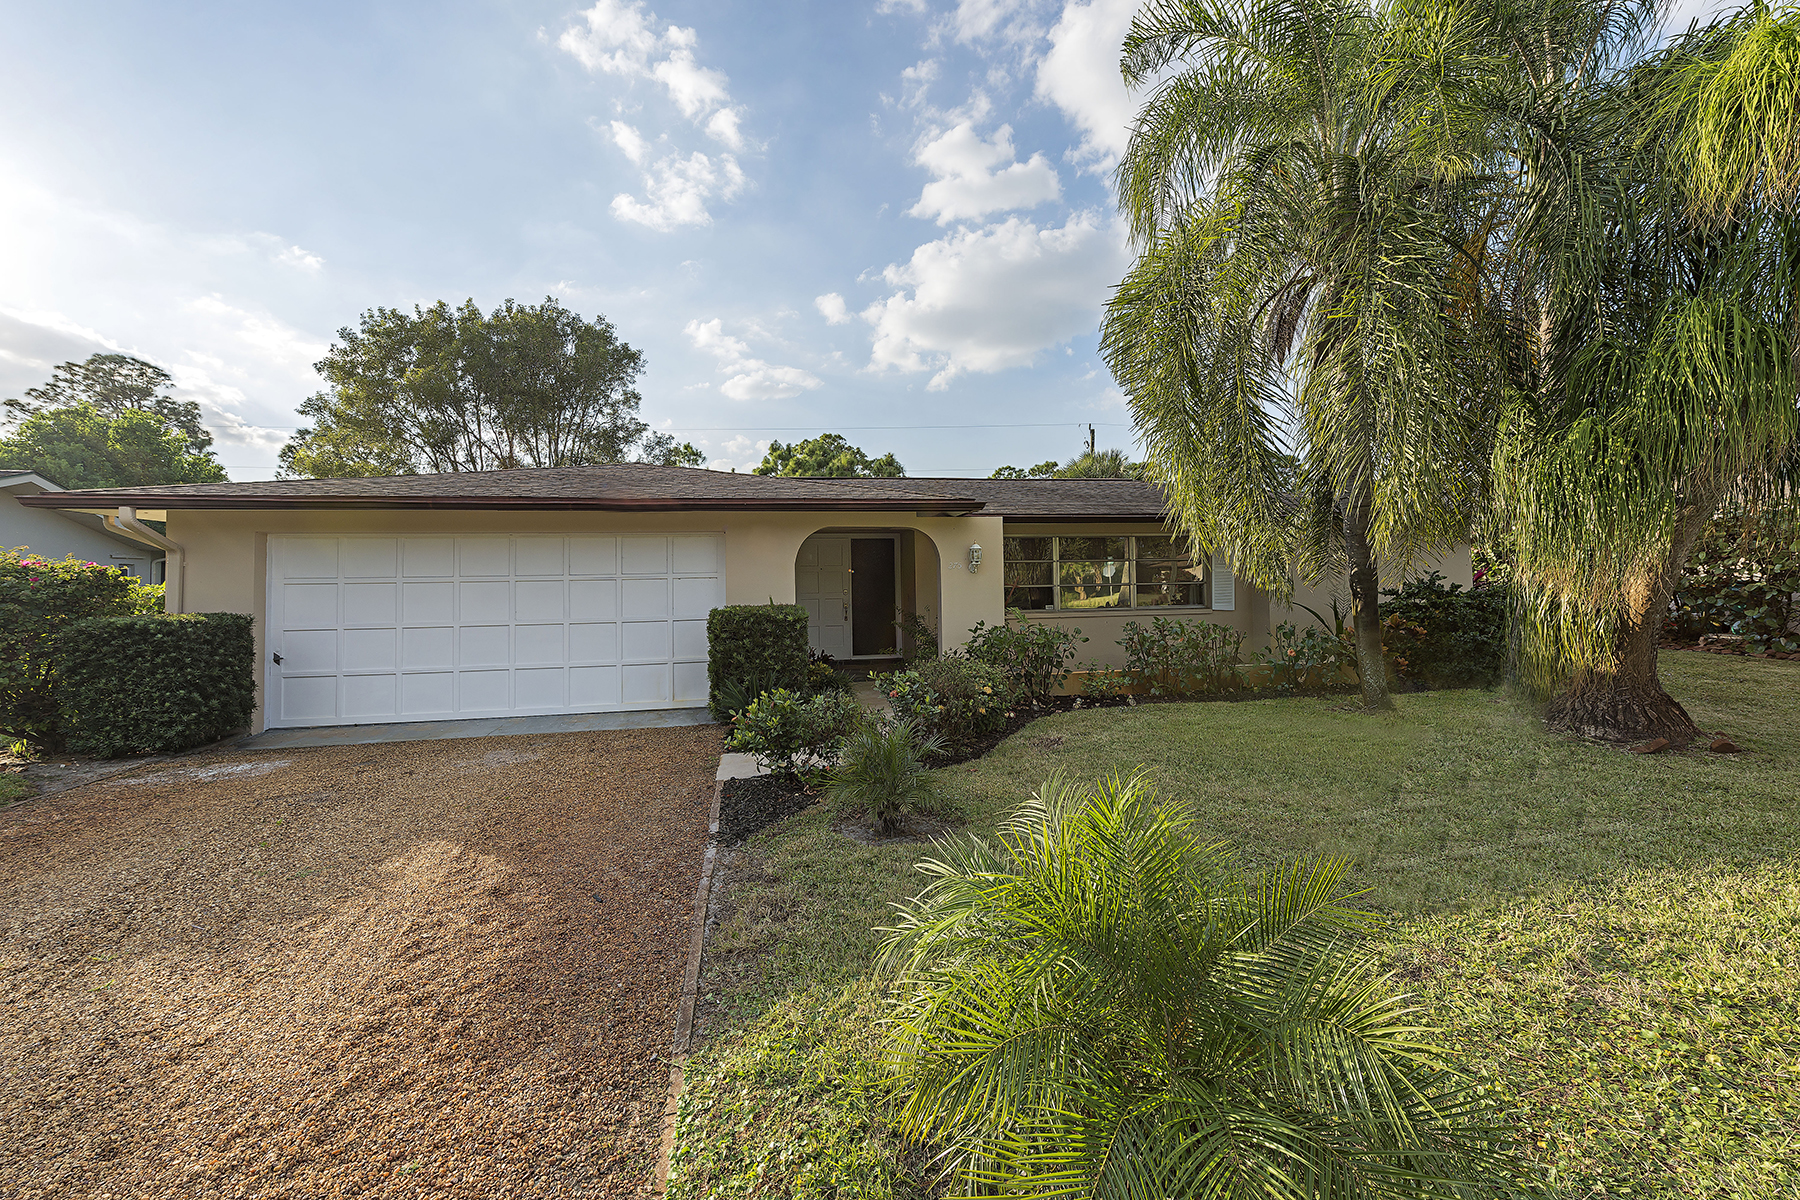 Single Family Home for Sale at PALM RIVER 275 Cypress Way W Naples, Florida, 34110 United States